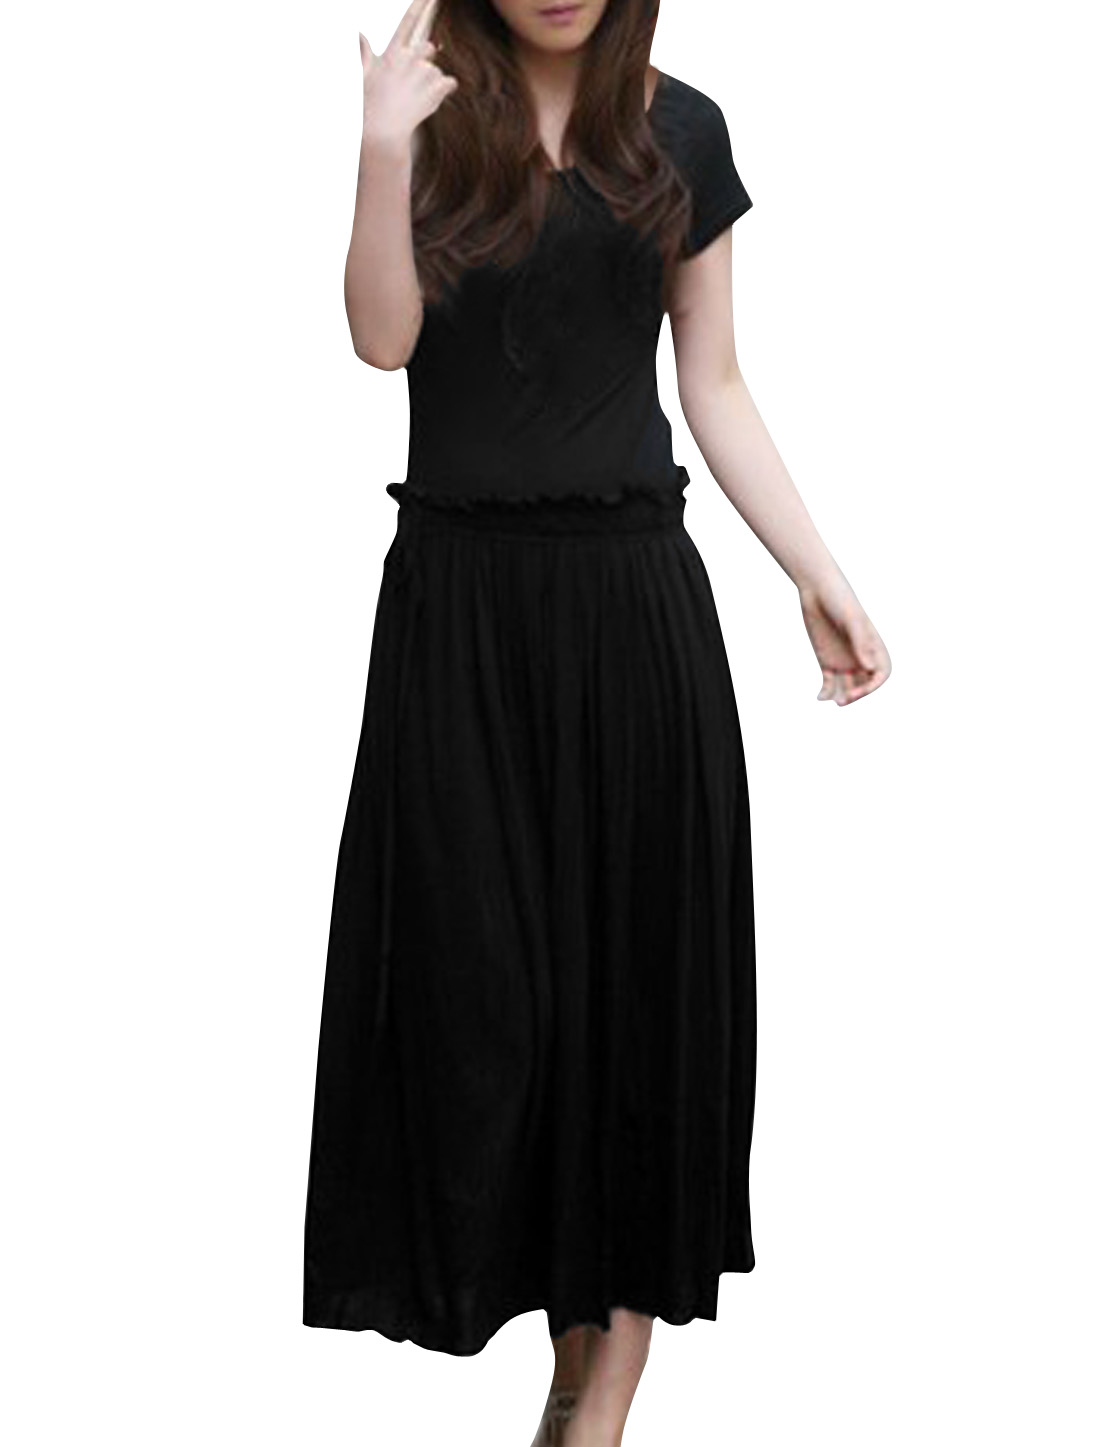 Woman Chic Scoop Neck Drawstring Waist Design Black Mid-calf Dress M